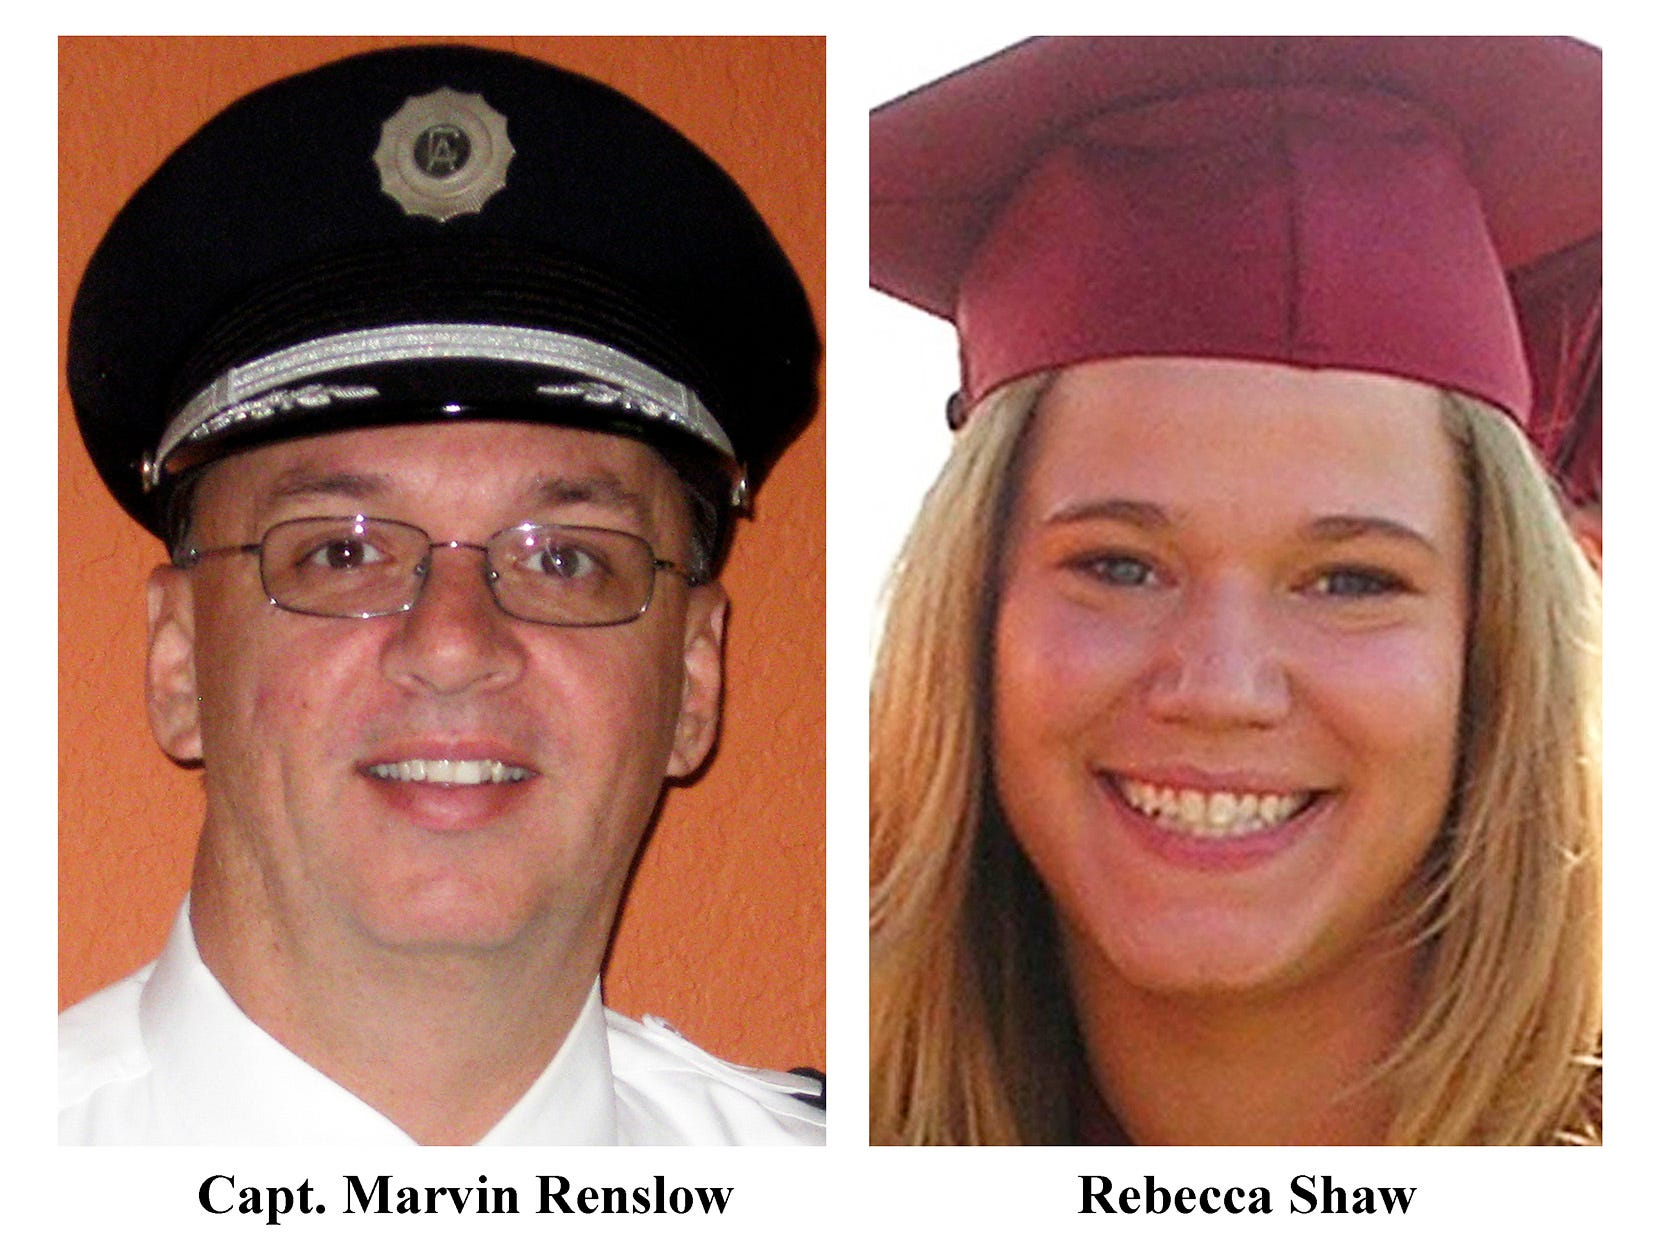 FILE - In this combo file photo, Capt. Marvin Renslow, left, and co-pilot Rebecca Shaw  are shown. Renslow was piloting Continental Connection Flight 3407, and Shaw was the co-pilot bound from Newark, N.J.,   Feb. 12, 2009,on approach to Buffalo Niagara International Airport when it went down in light snow and mist and crashed into a house below. All 49 people aboard and one person on the ground were killed. A cockpit voice recorder transcript released Tuesday May 12, 2009, by the National Transportation Safety Board , recounts their final moments.